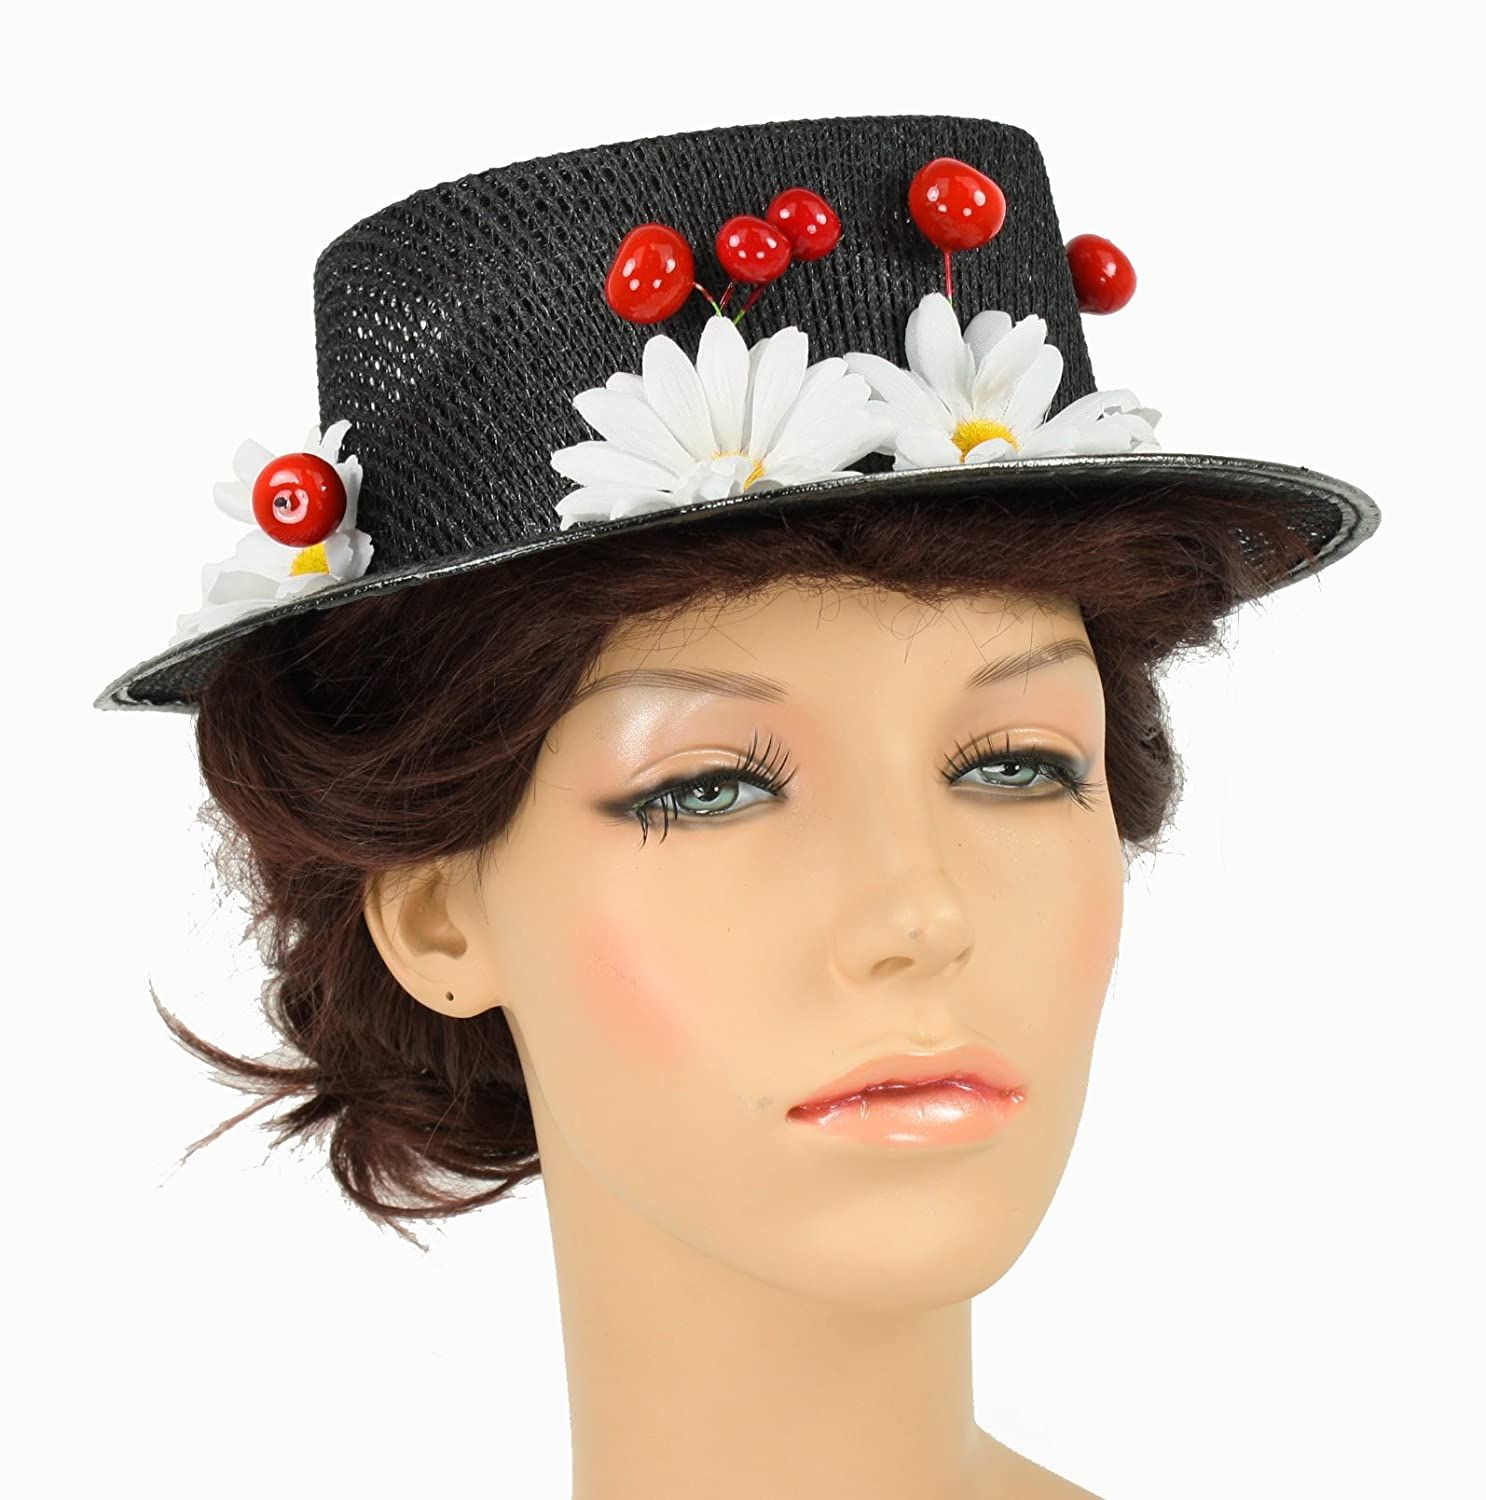 Mary Poppins Hat For Sale uk Women's Mary Poppins Hat With